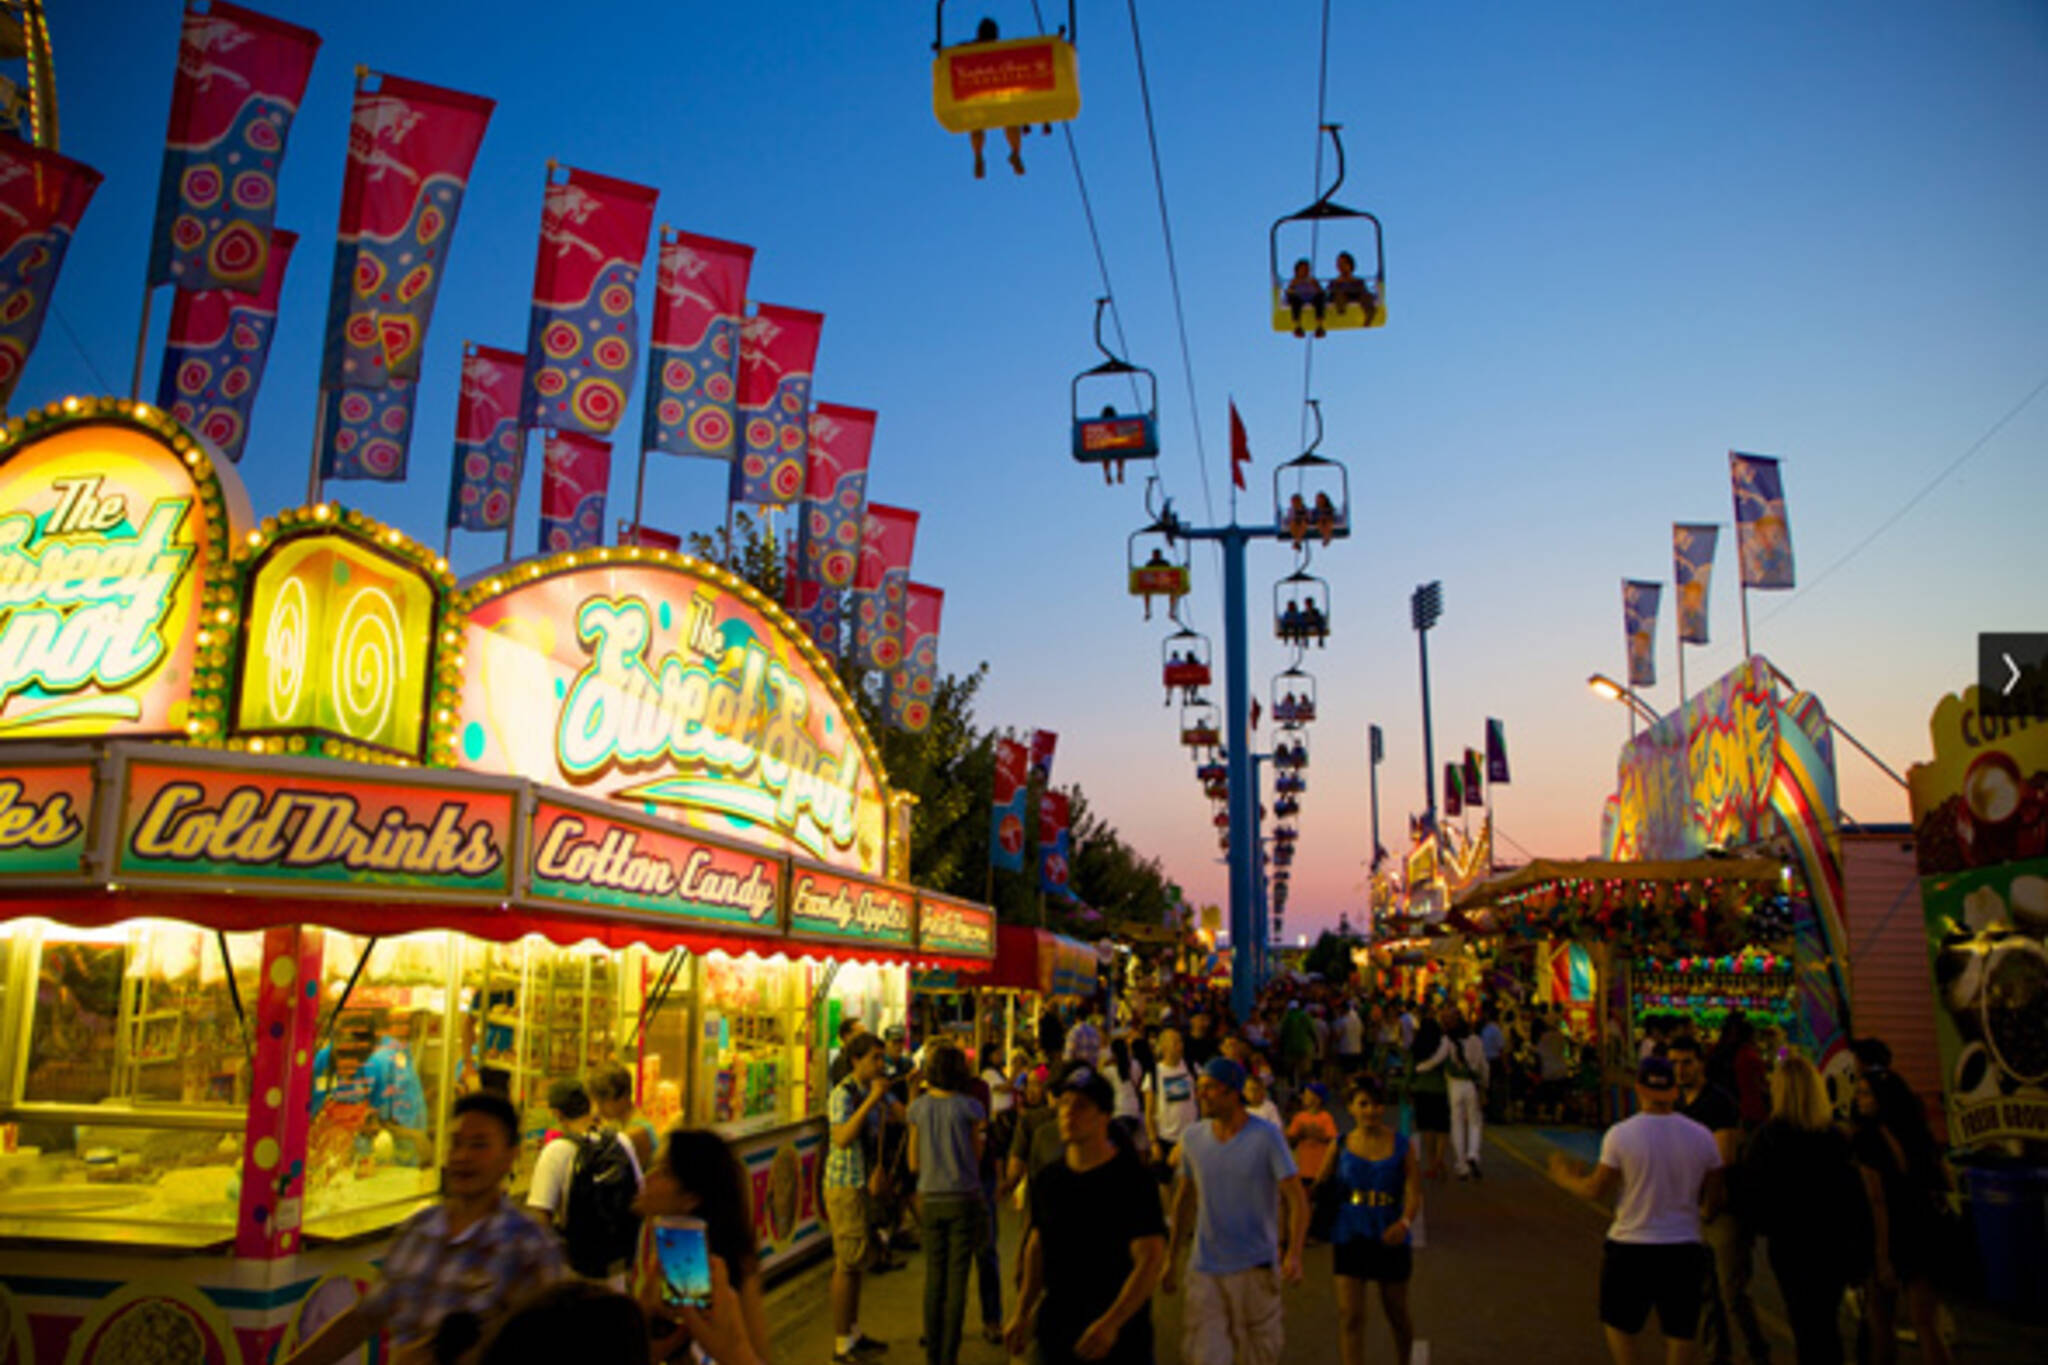 Midway CNE